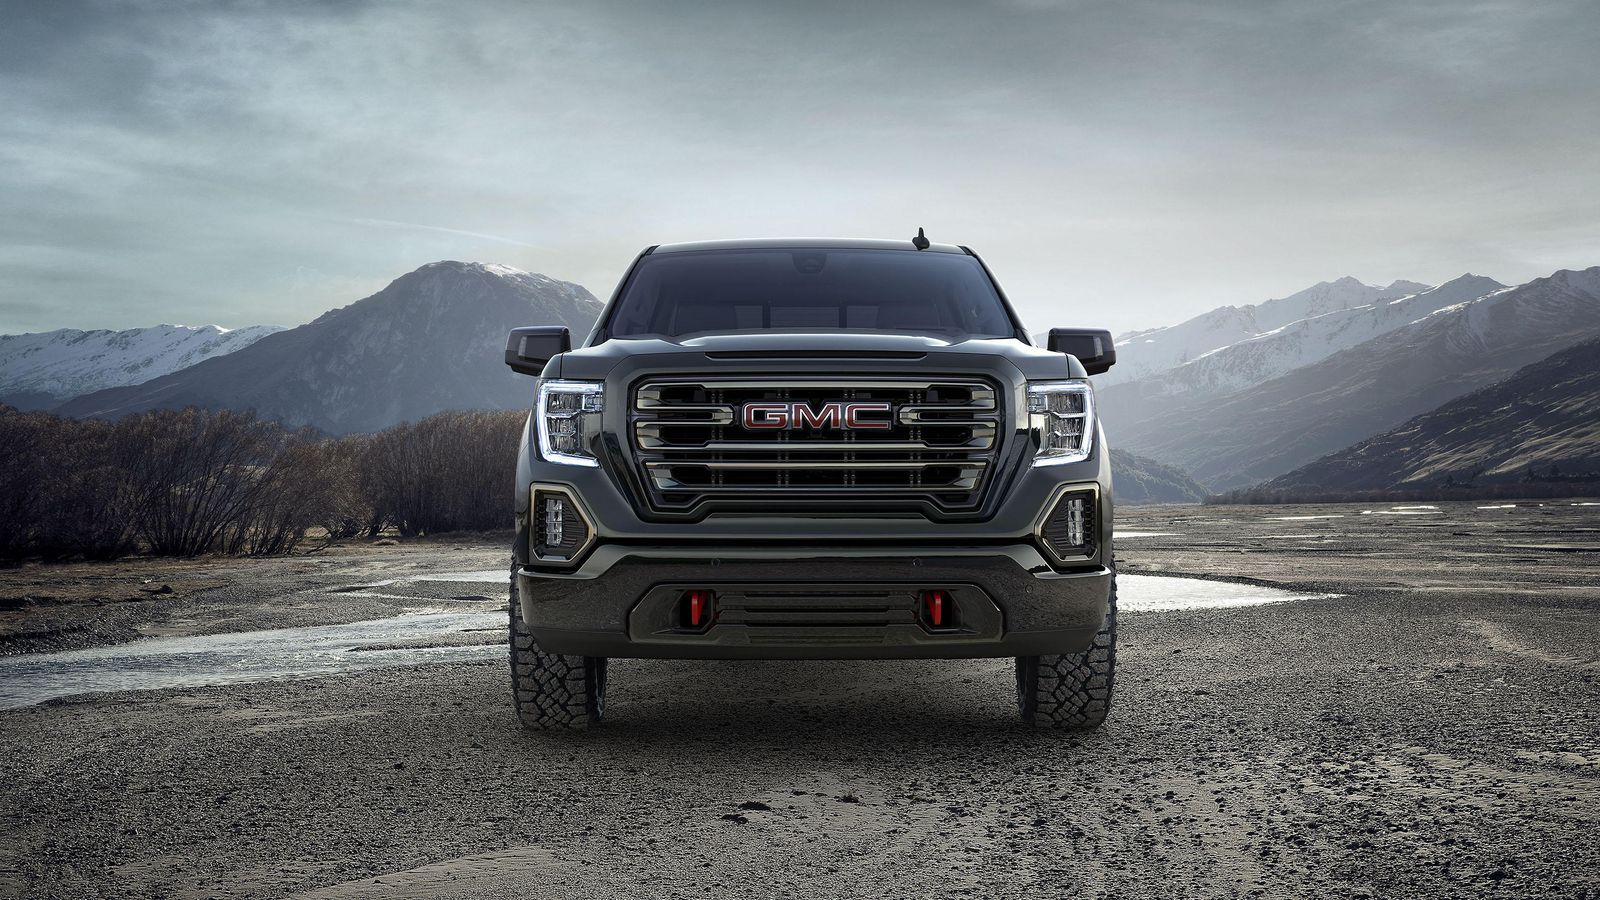 2019 Gmc Sierra At4 Getting Ready For Rough Terrain With Images